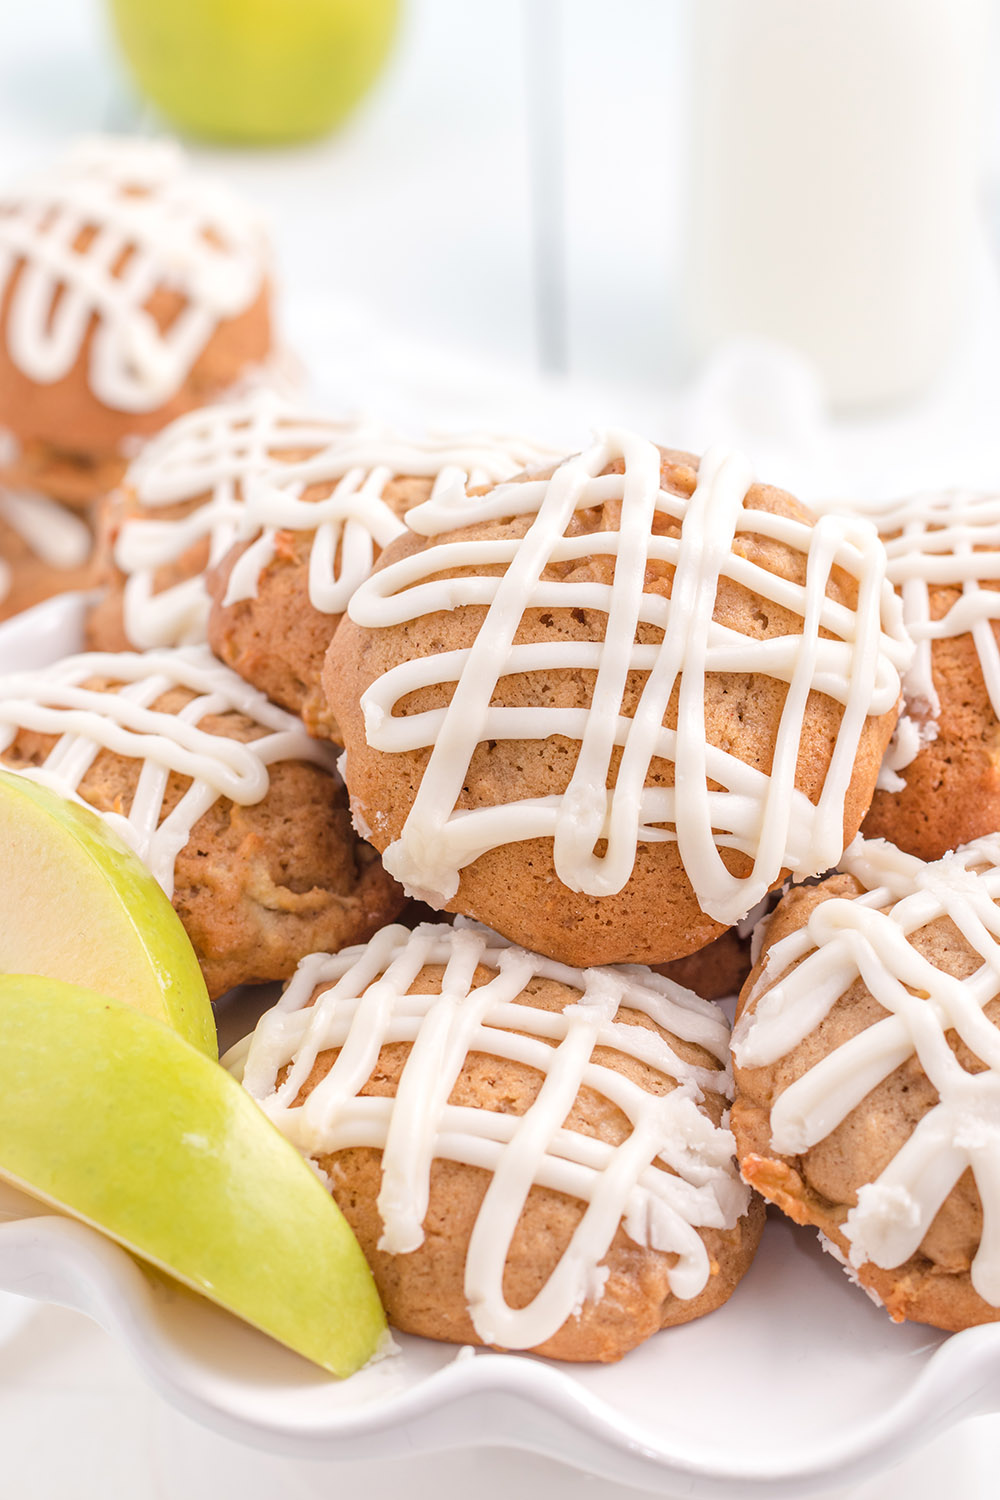 Plate of apple cookies topped with glaze.